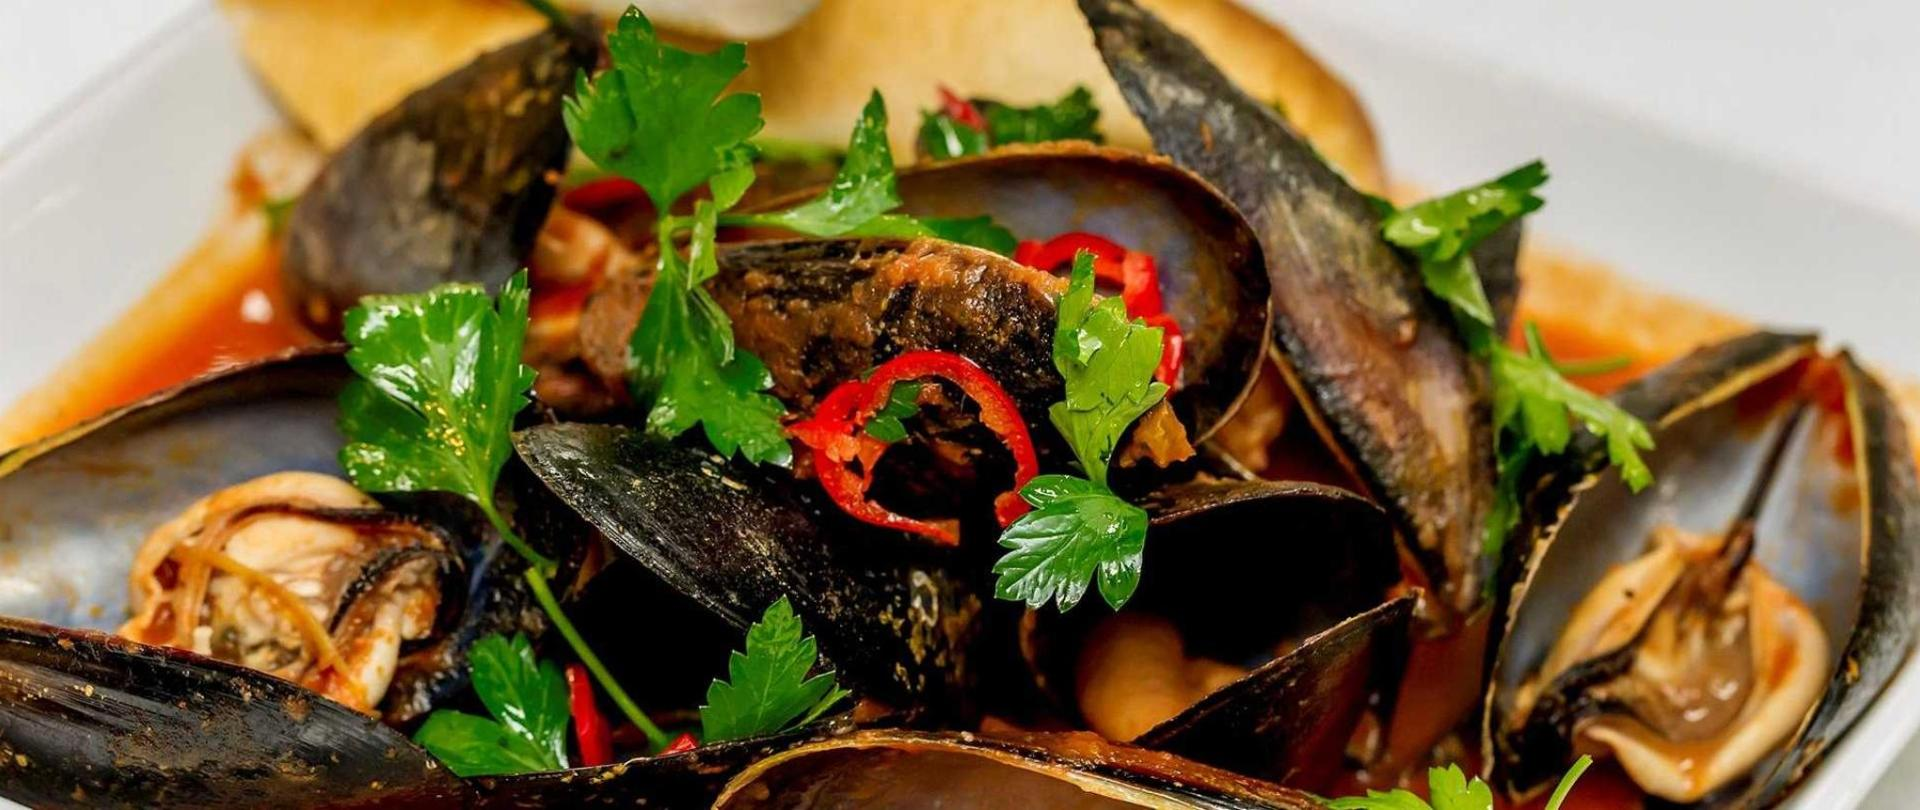 Delicious local mussels in a tomato chilli broth.jpg